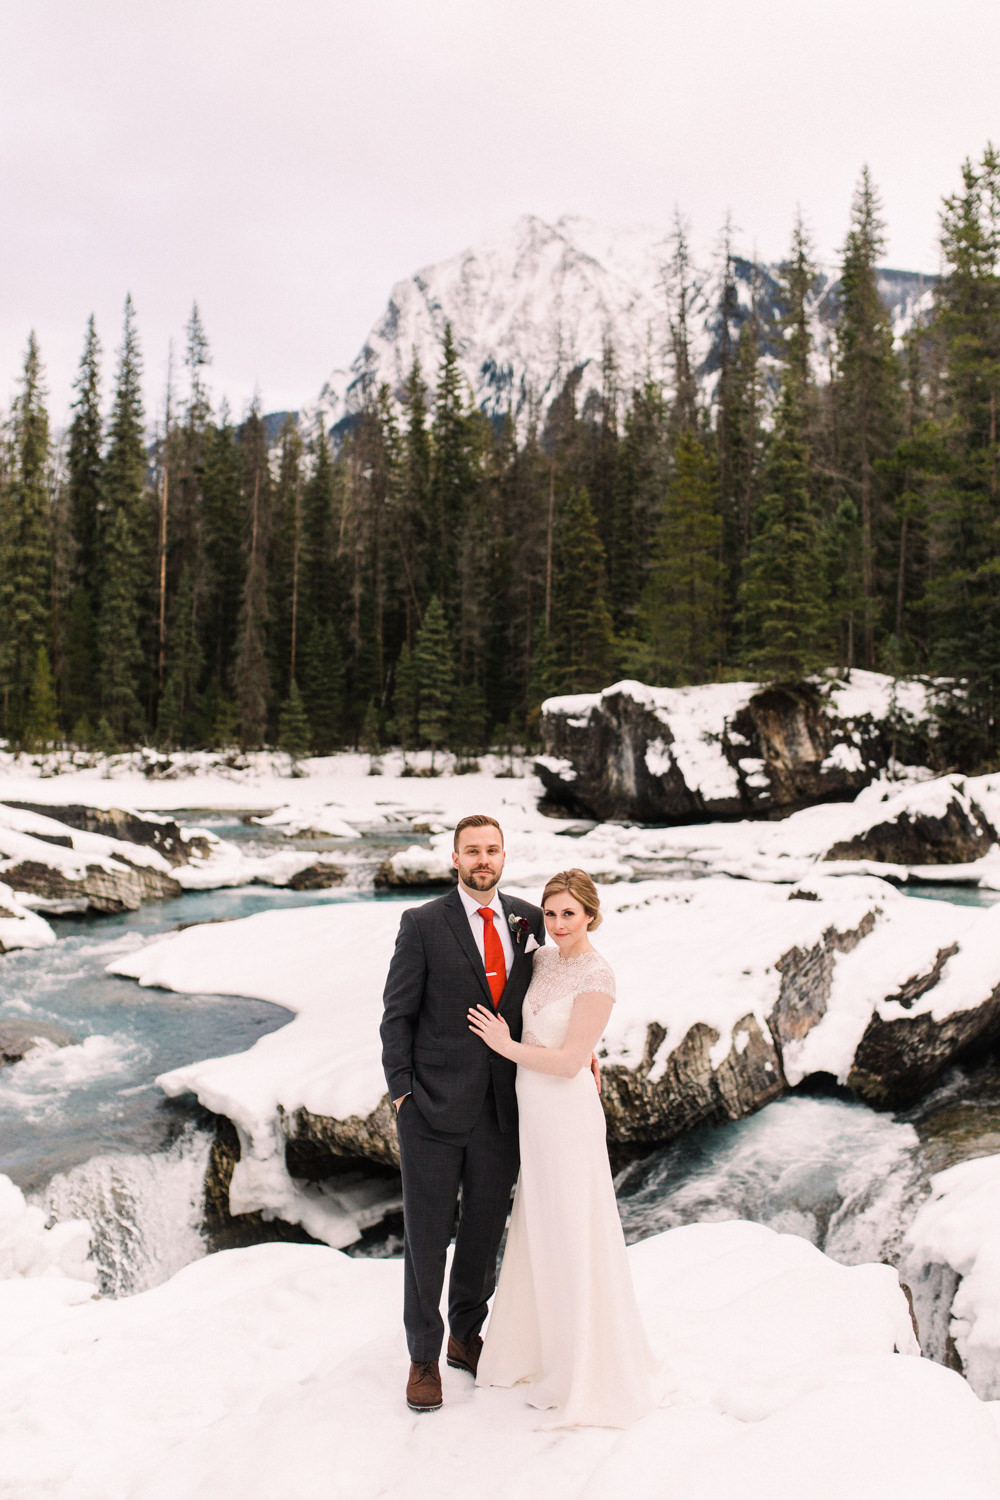 Matt-and-Jennas-Emerald-Lake-winter-wedding-19.jpg